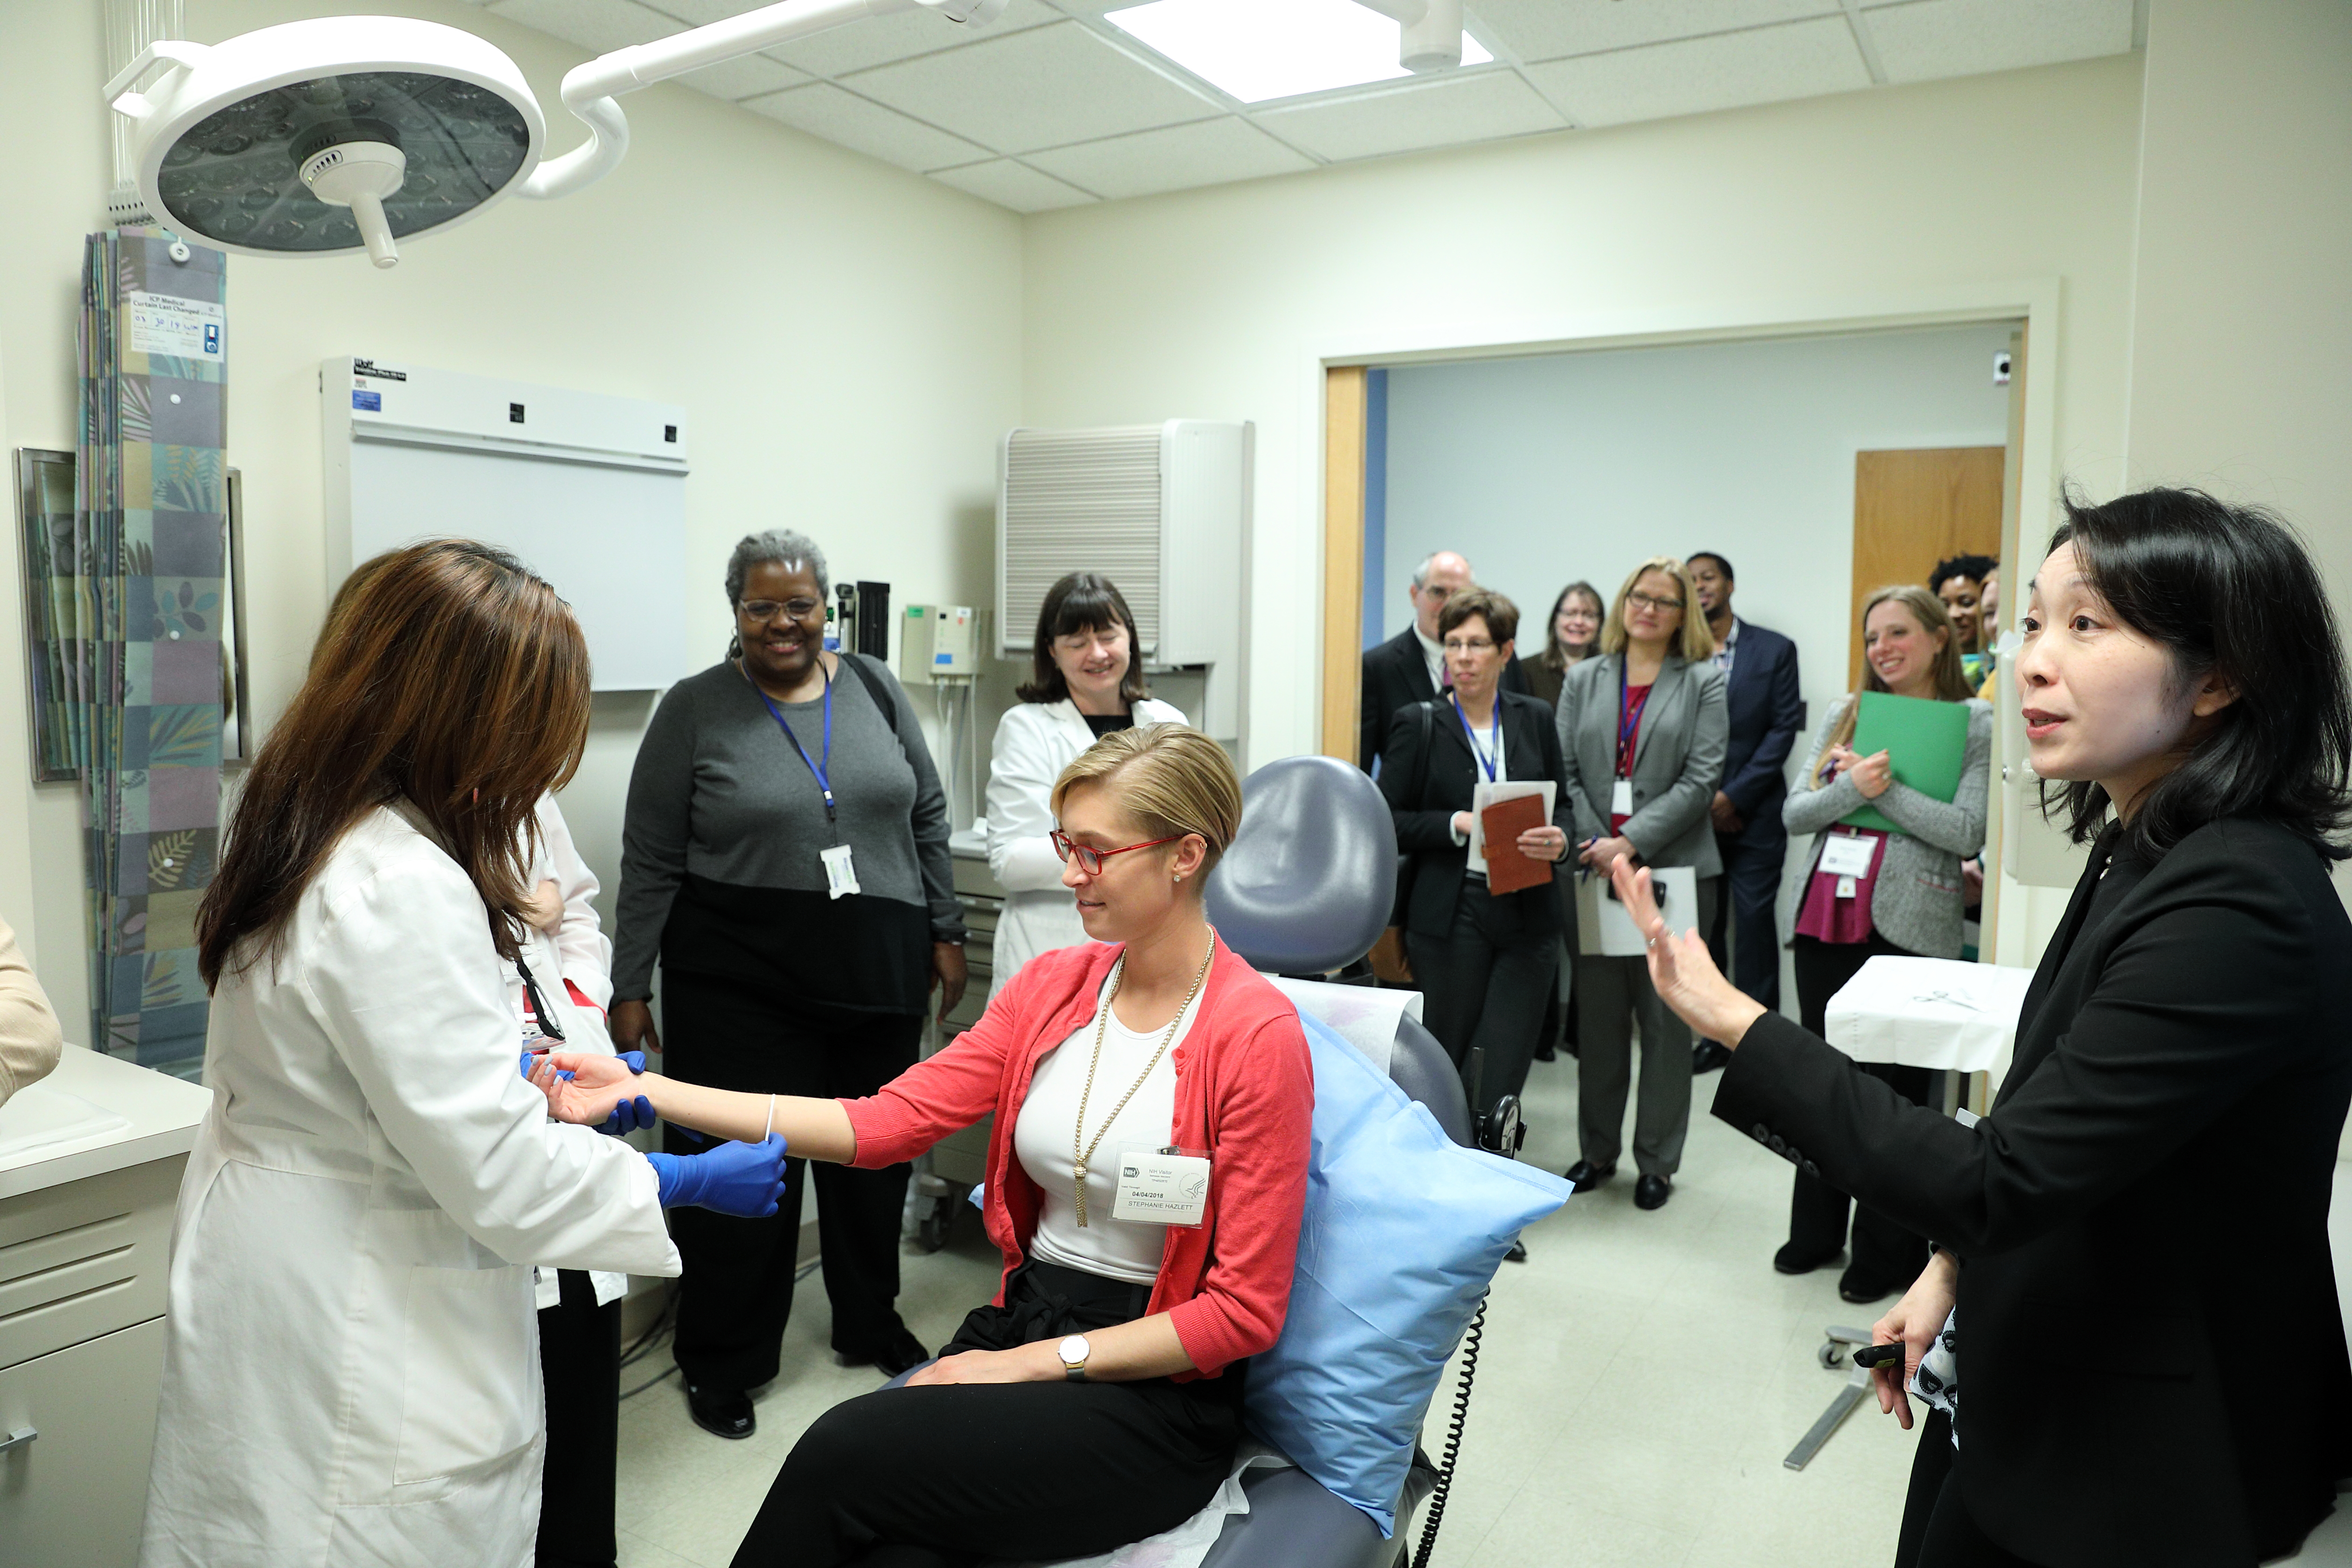 Research nurse performing mock experiment on patient